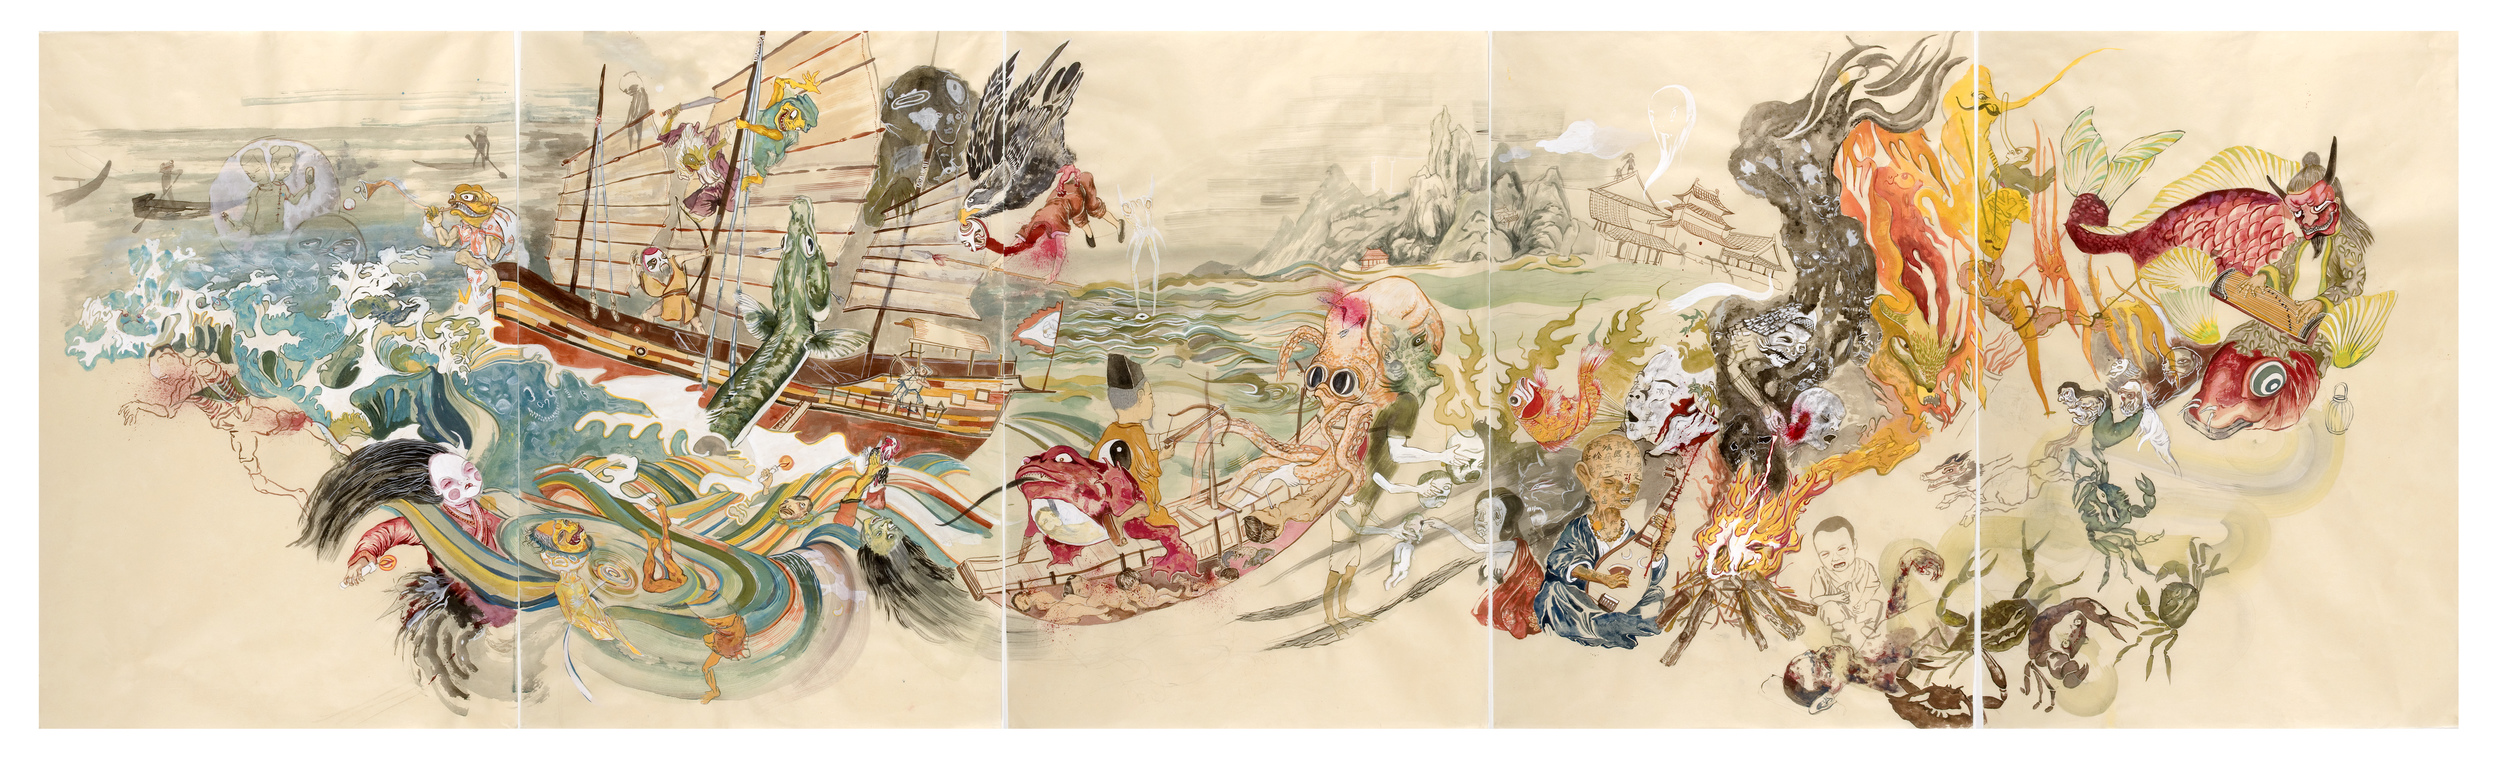 Howie Tsui 徐浩恩, Dead Sea 死海, 2009, Ink and paint pigment on mulberry paper 桑皮纸, 国画颜料与墨, 113 x 334 cm